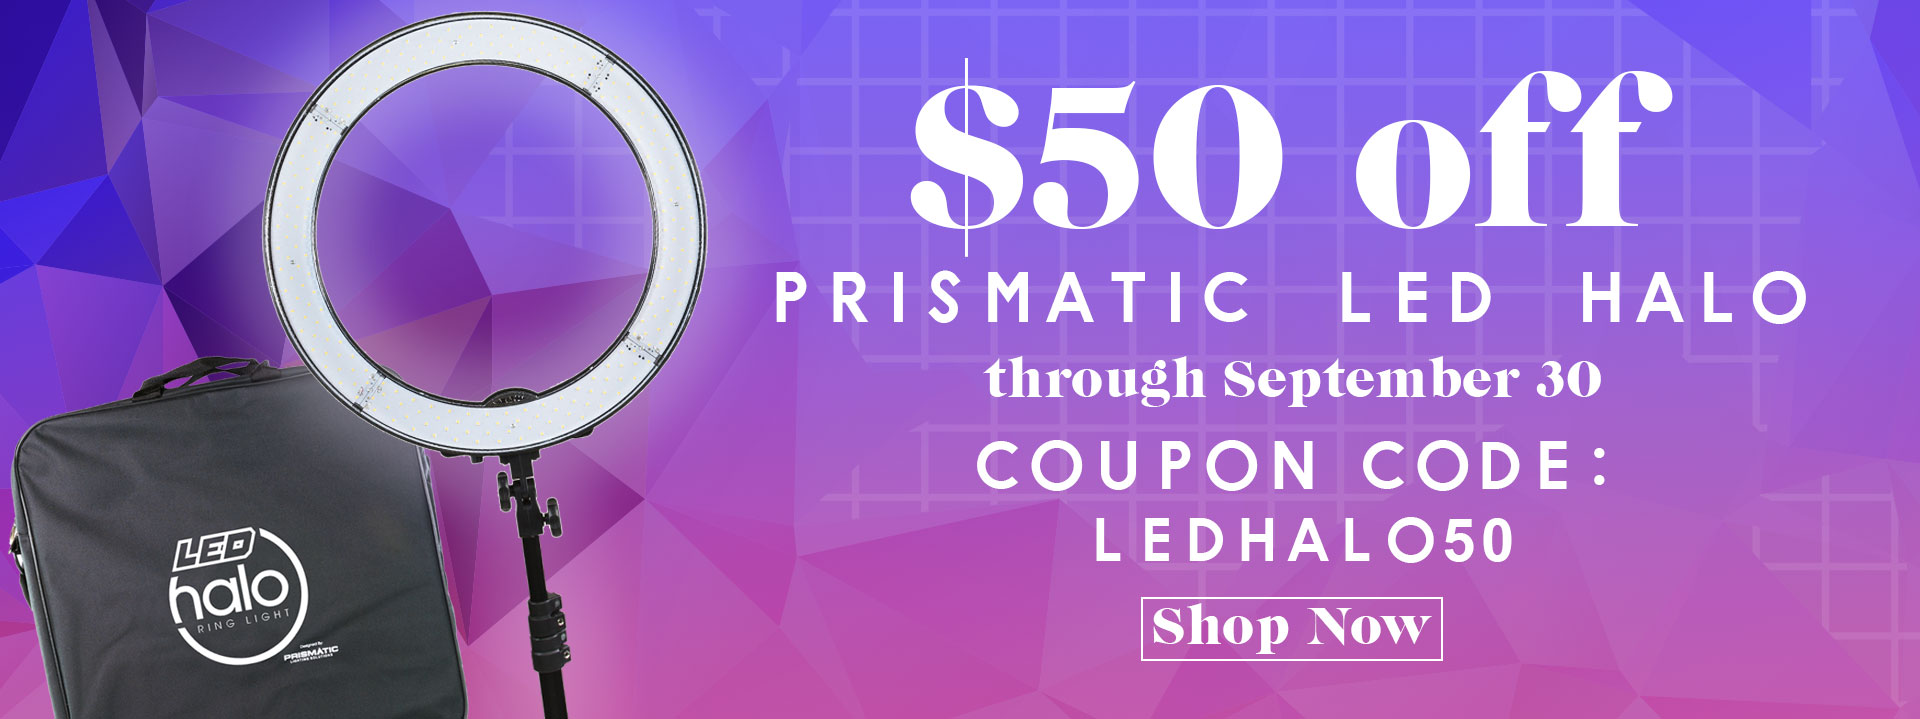 $50 off Prismatic LED Halo